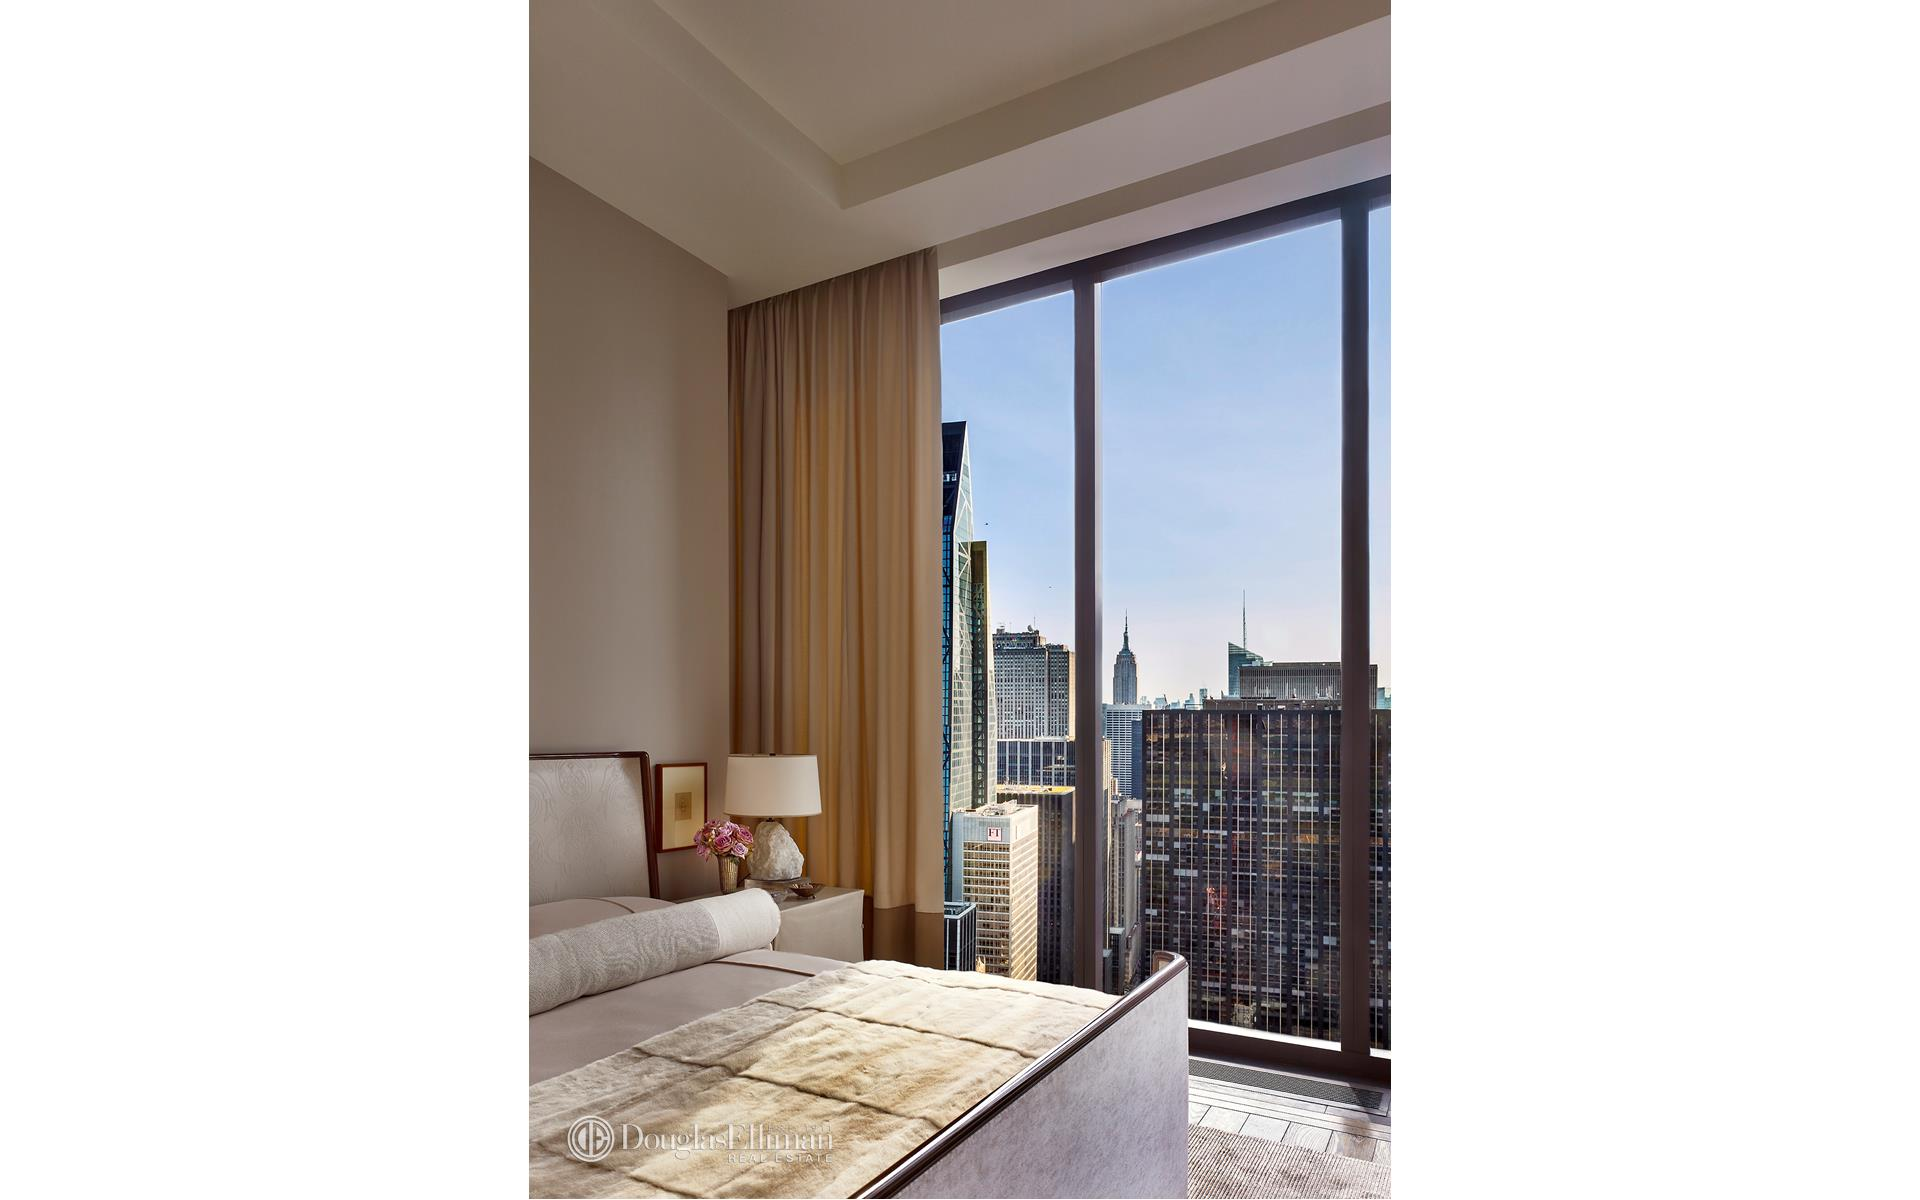 111 West 57th Street Midtown West New York NY 10019